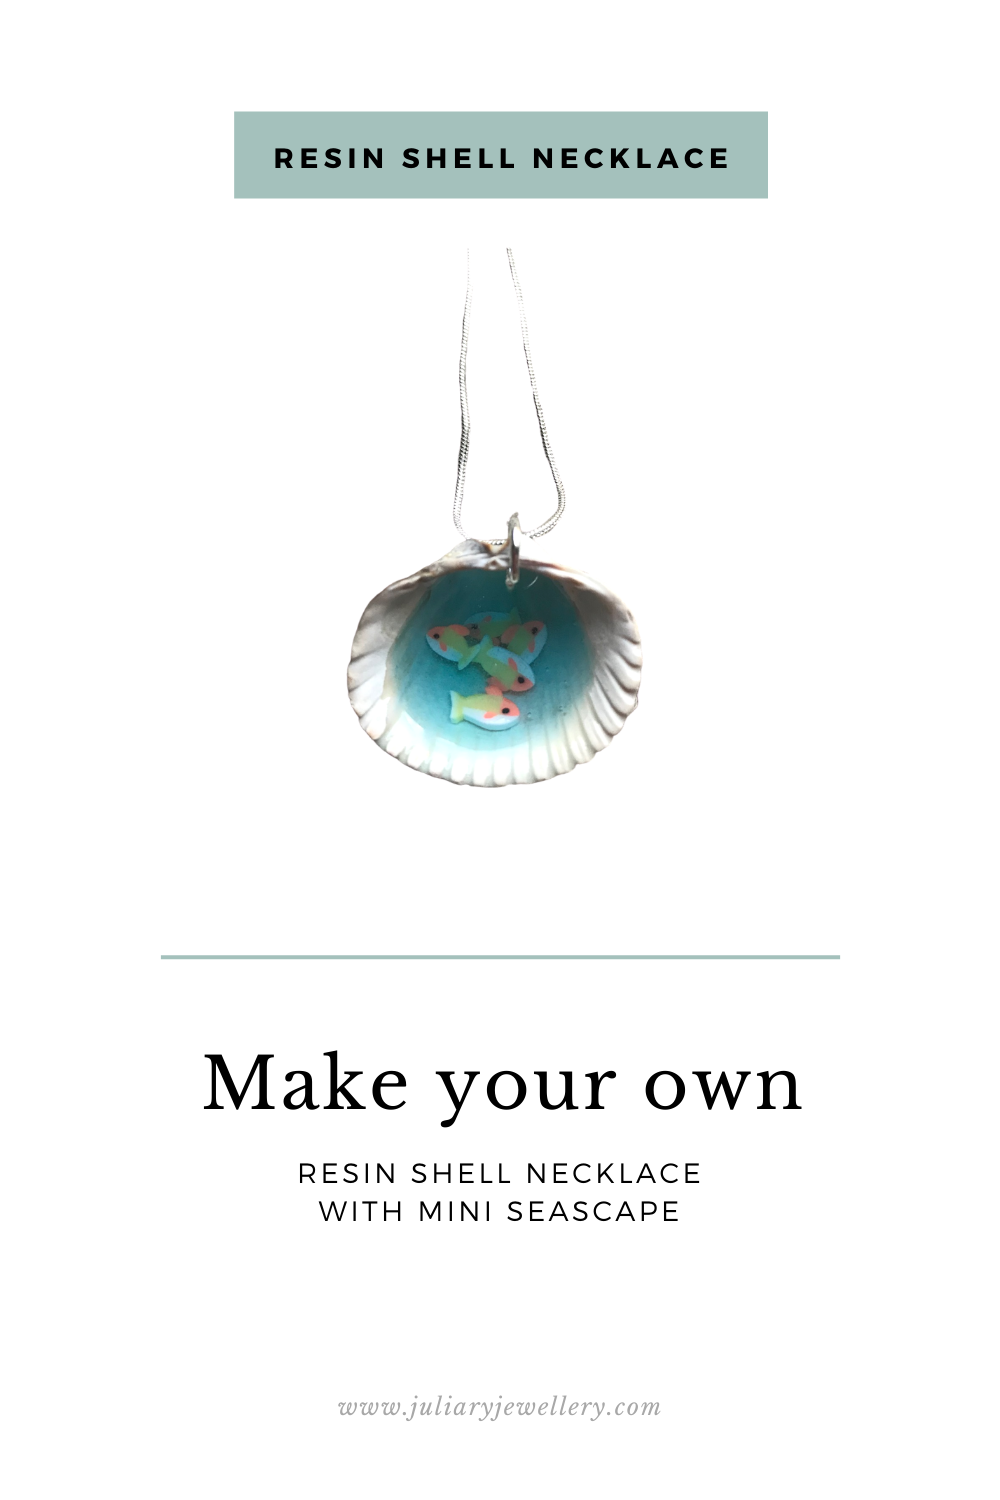 Make your own seascape necklace with resin and ashell